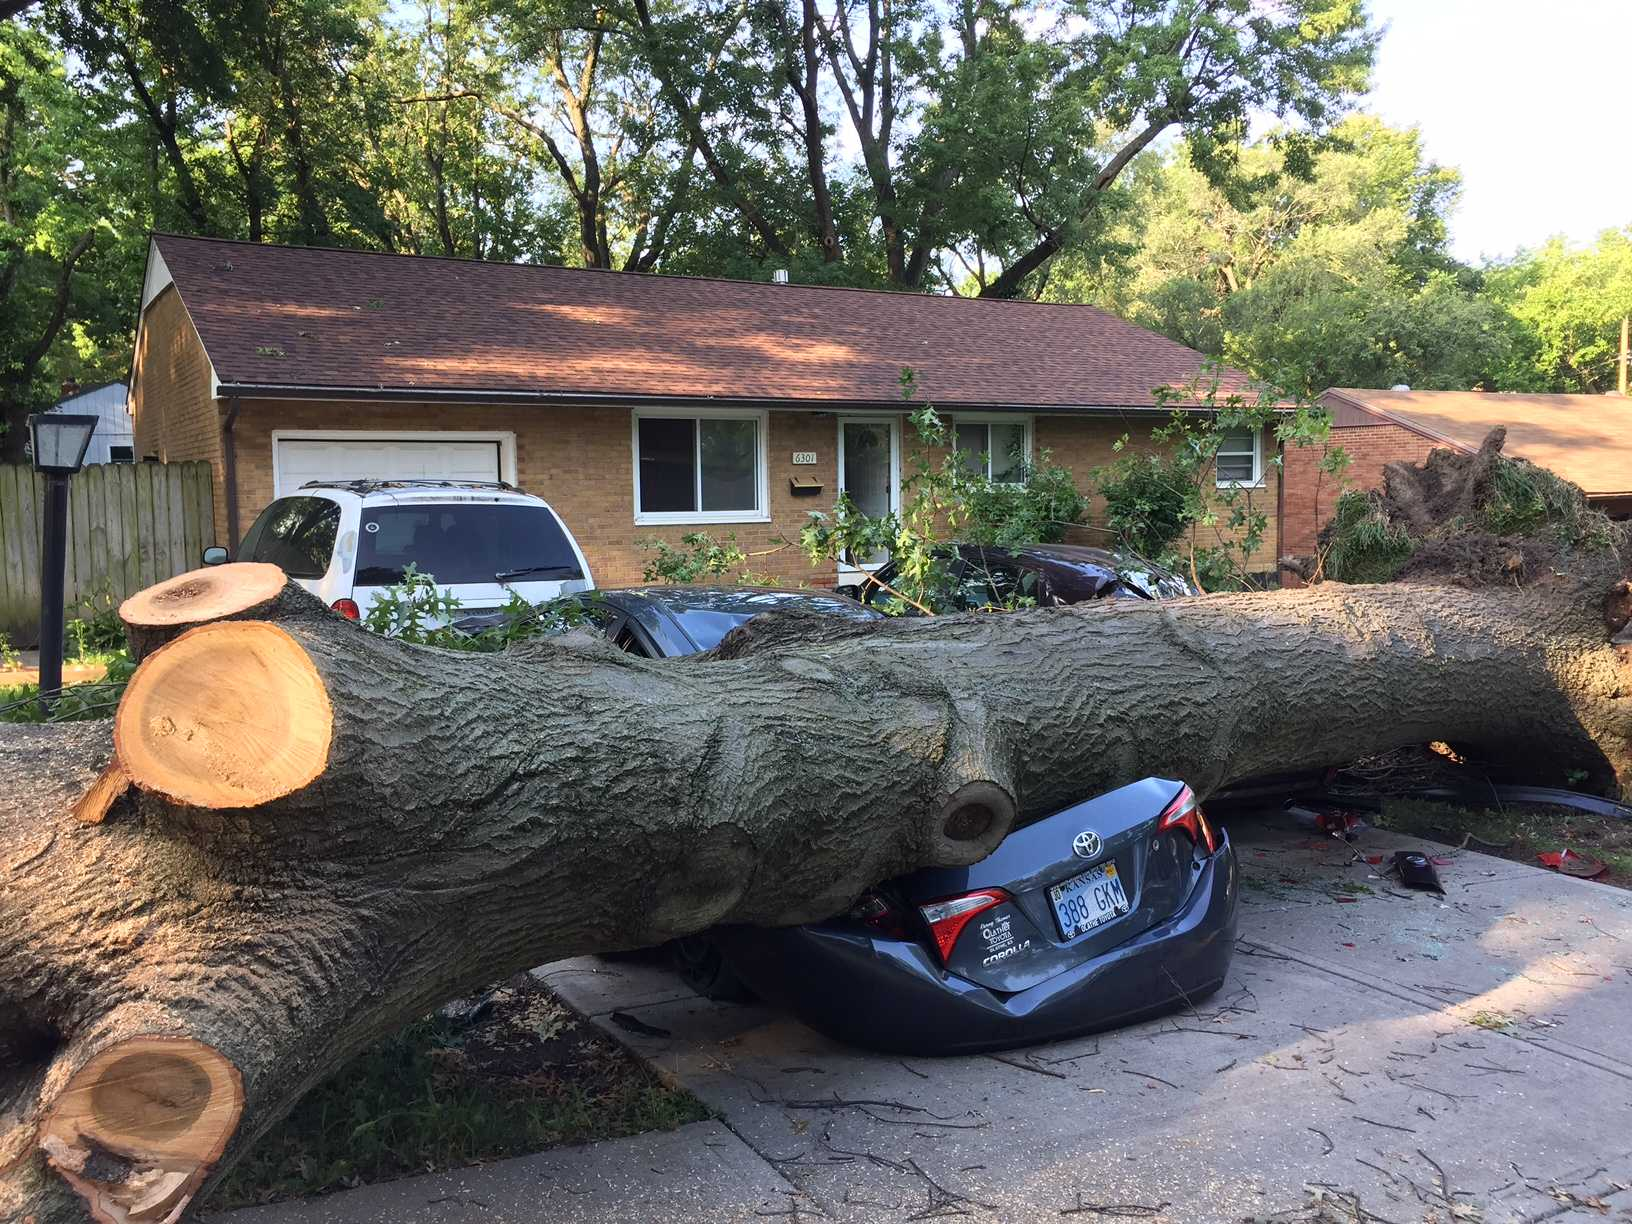 Storms knock out power to several homes in Missouri and IL